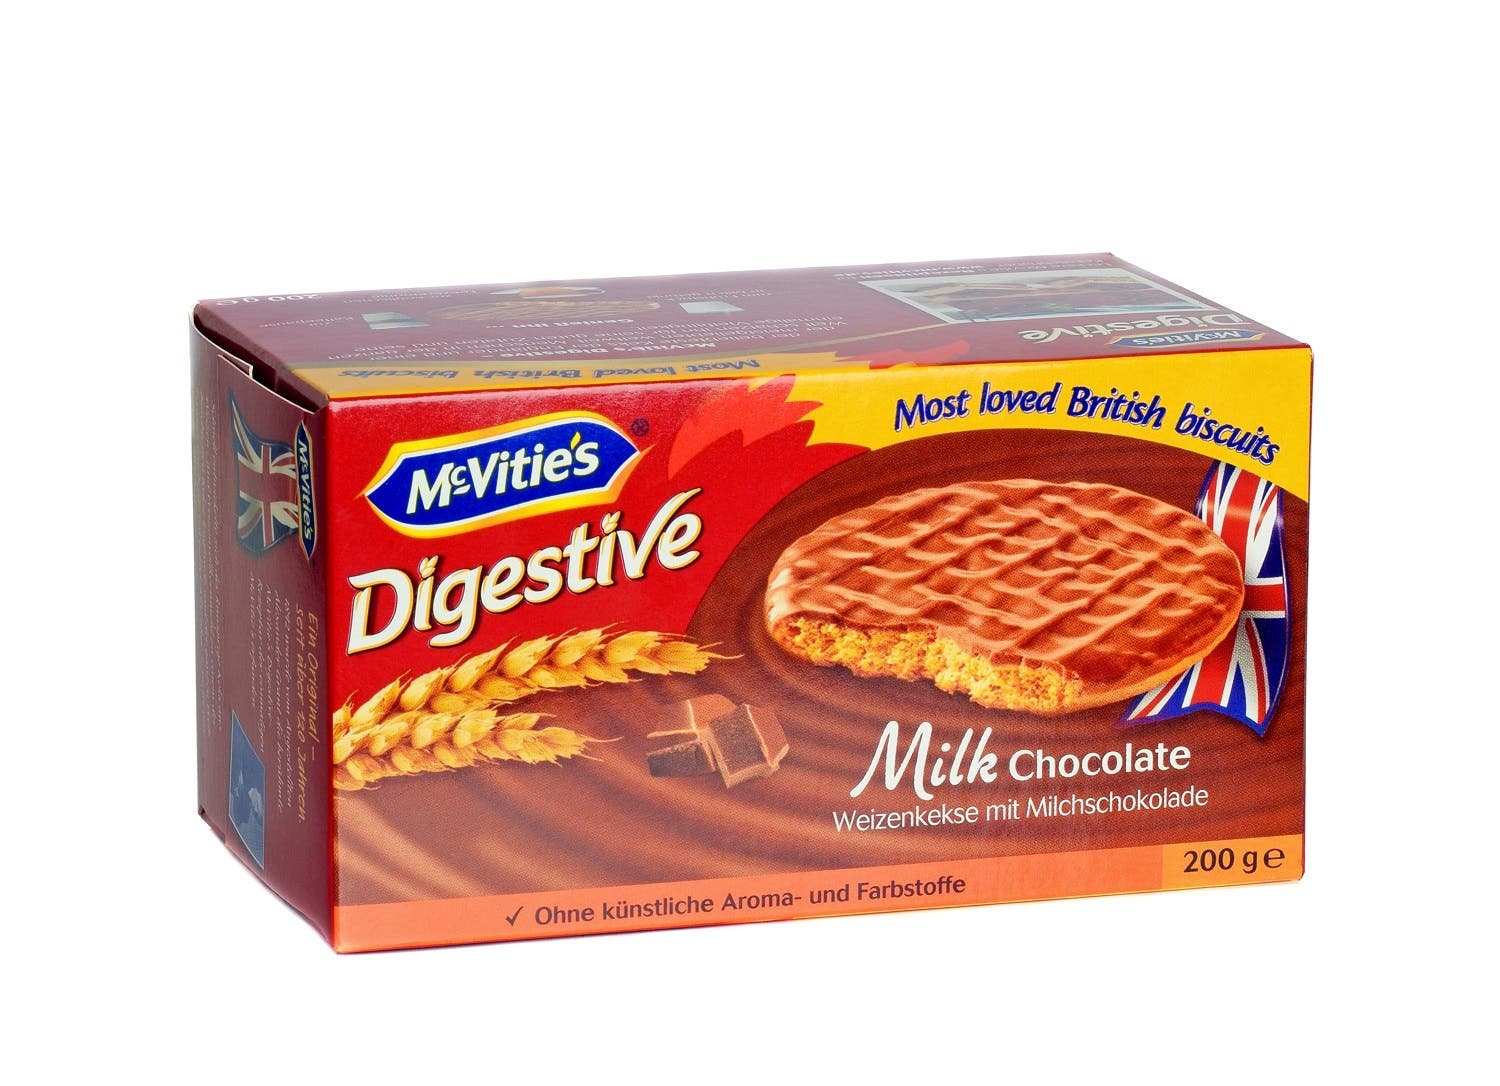 A box of McVities milk chocolate digestive biscuits. (Shutterstock)